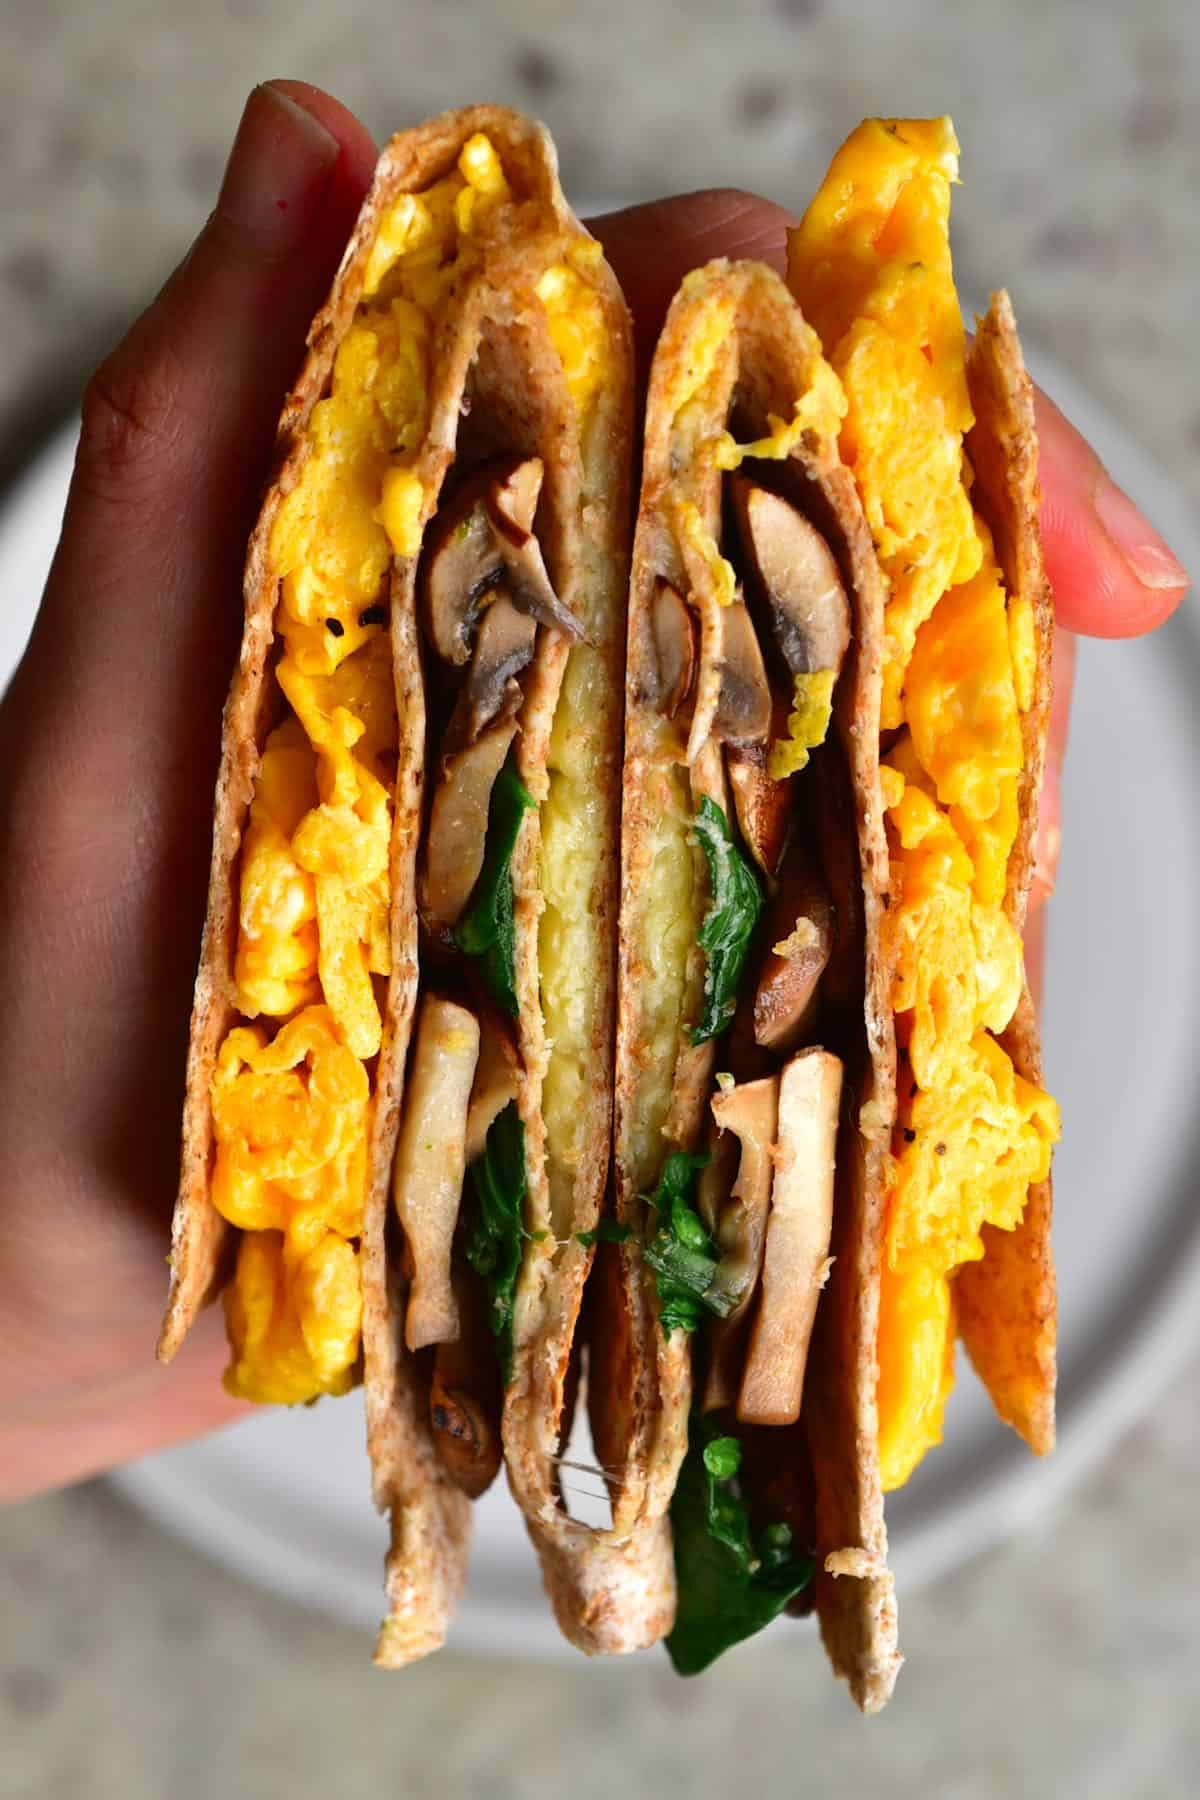 Folded tortilla with mushrooms and scrambled eggs